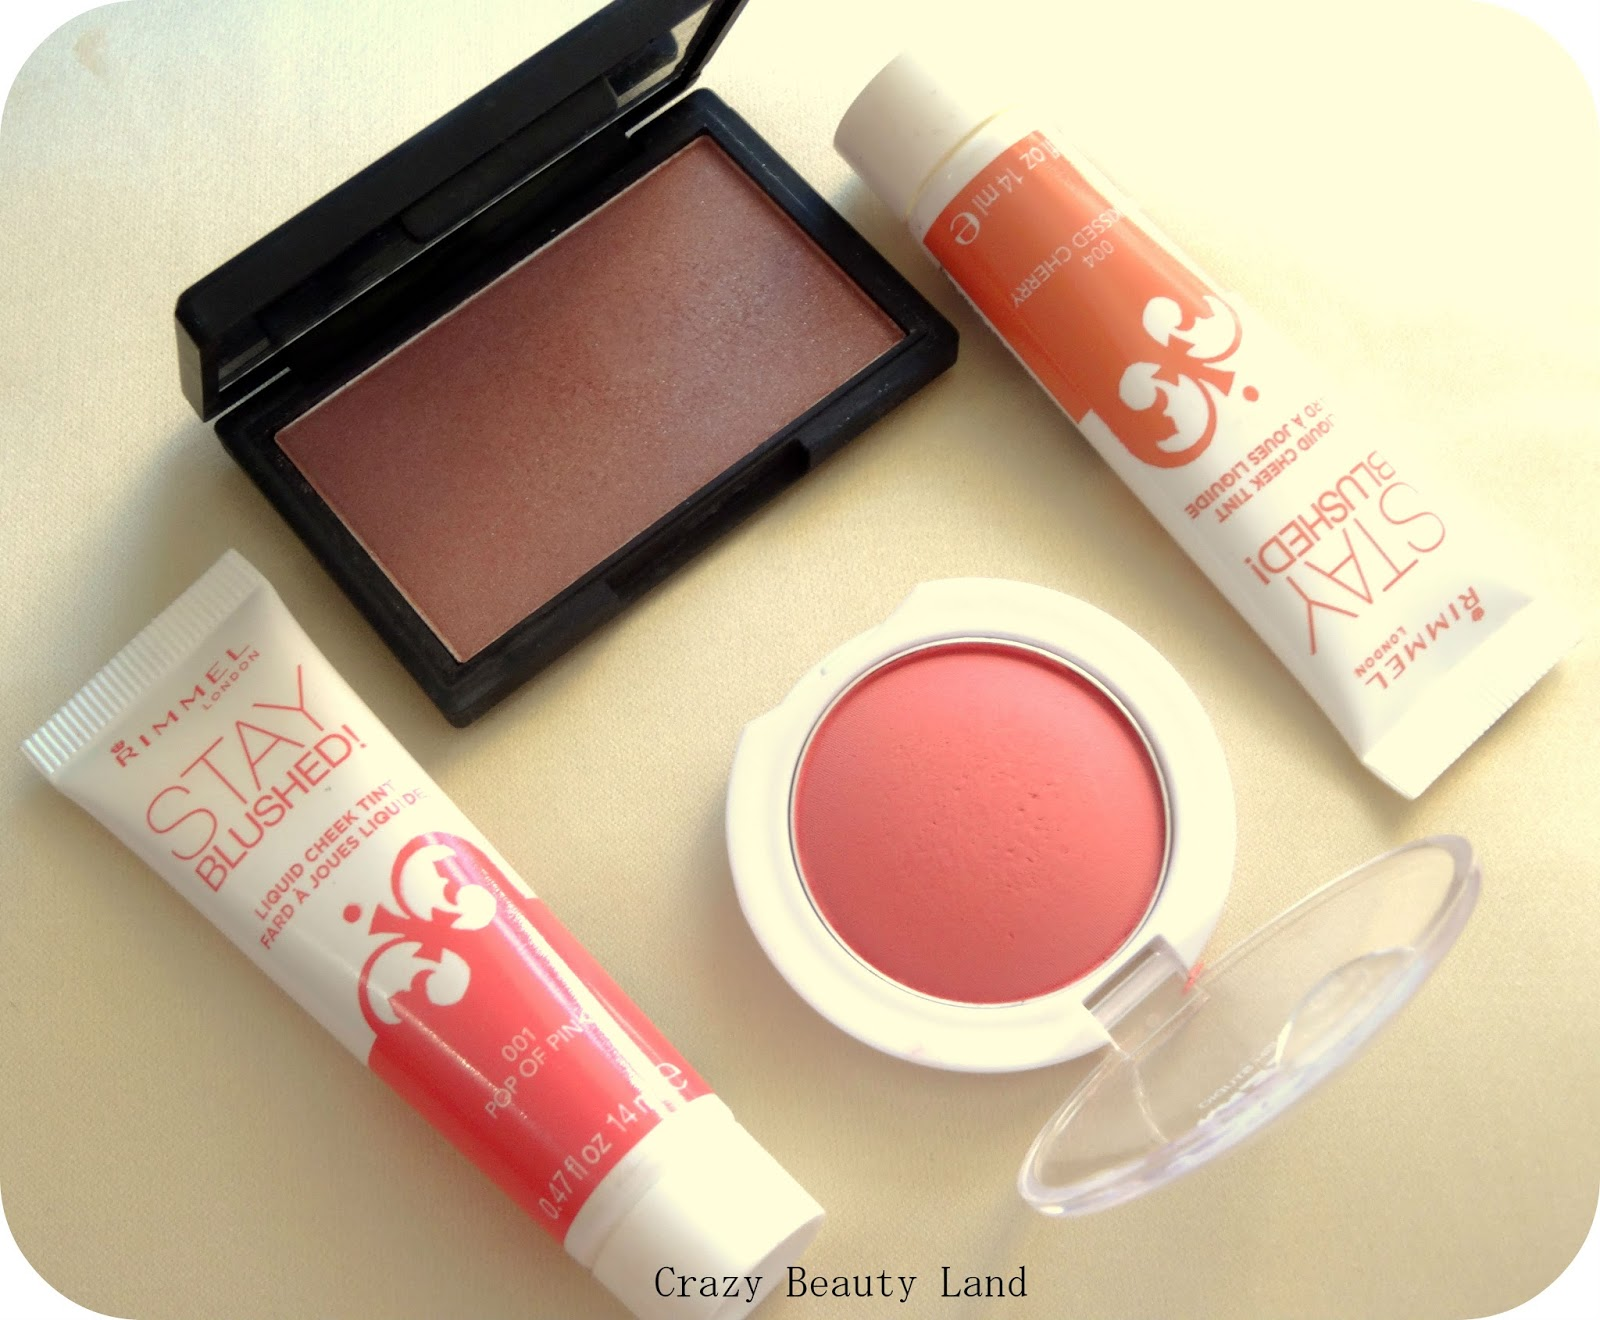 Sleek Makeup Antique Blush, Rimmel Stay Blushed Liquid Cheek Tint Sunkissed Cherry, Maybelline Cheeky Glow Blush Fresh Coral, Rimmel Pop of Pink